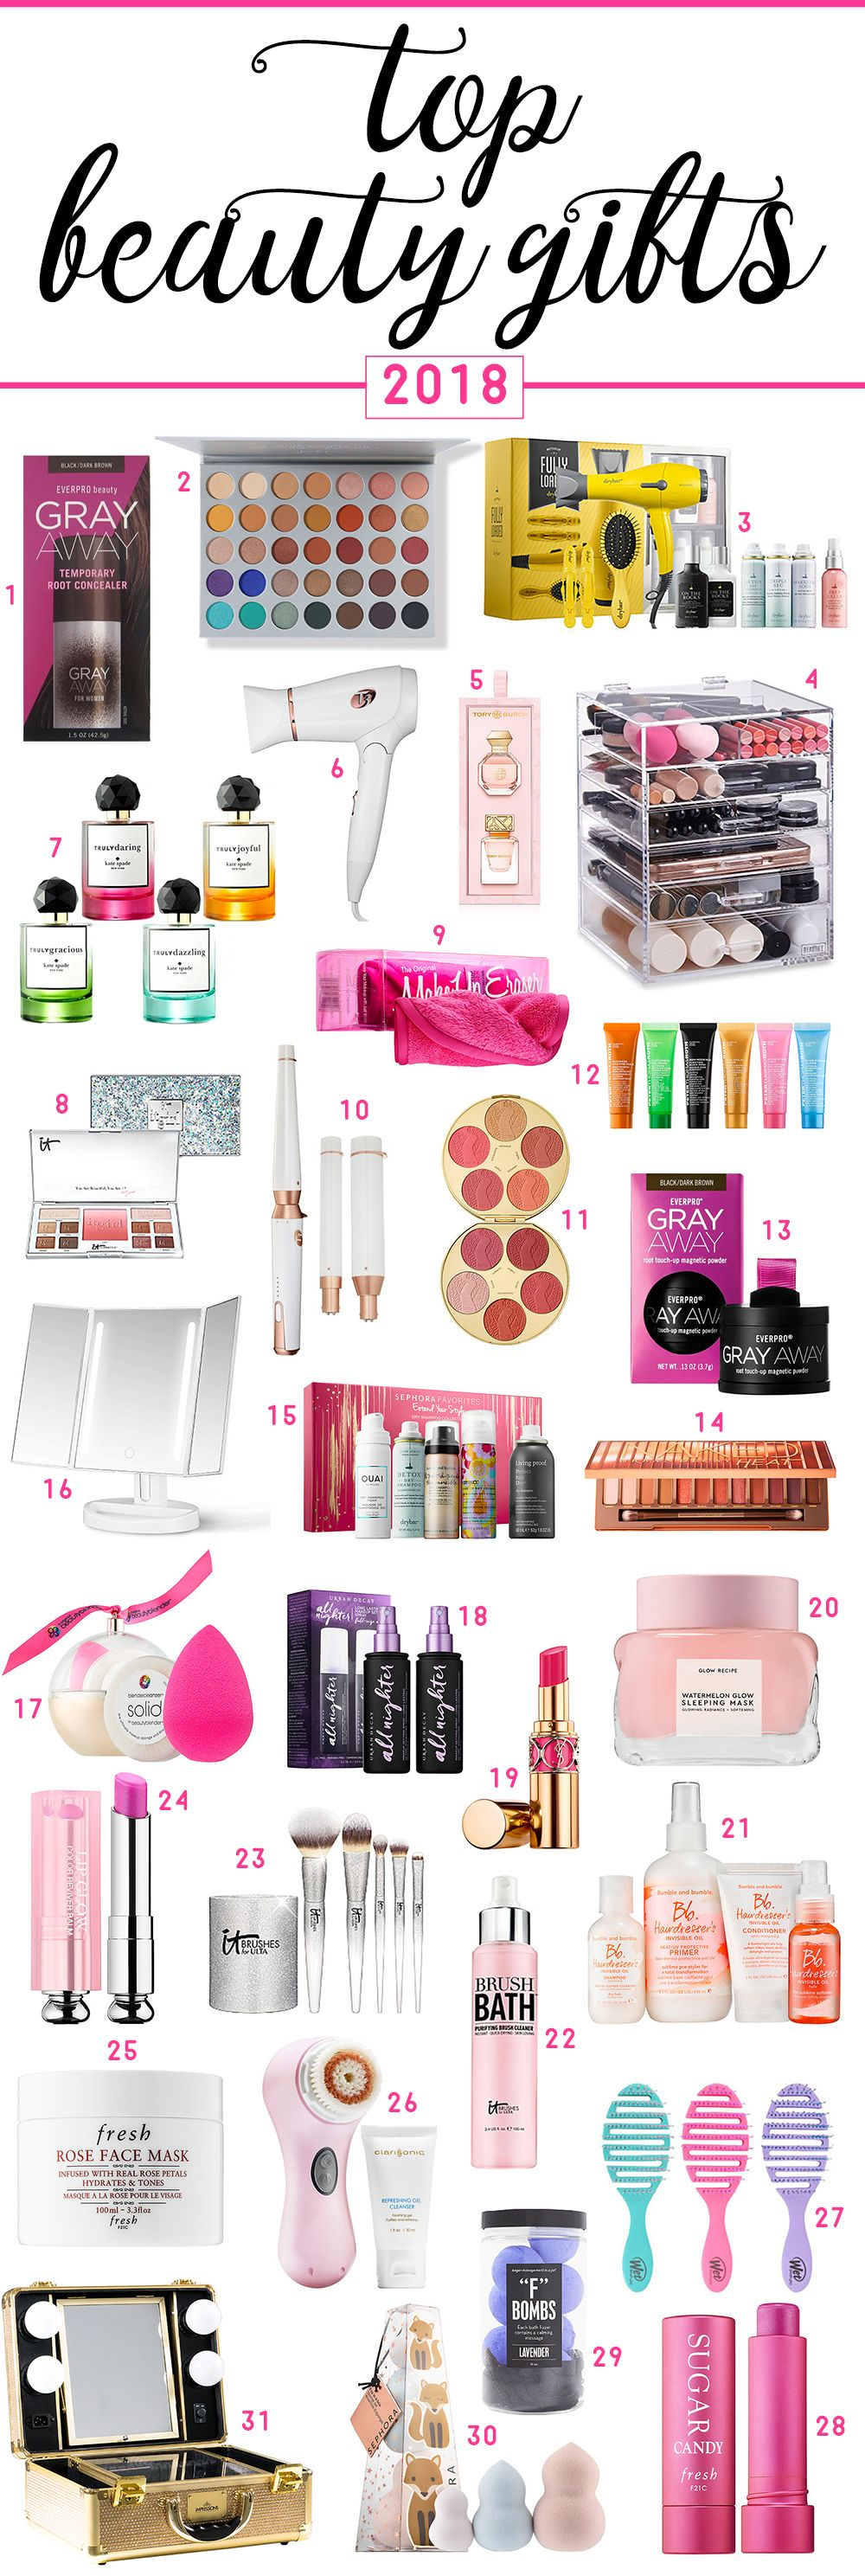 30+ Gift Ideas for the Makeup Junkie in Your Life | Makeup junkie